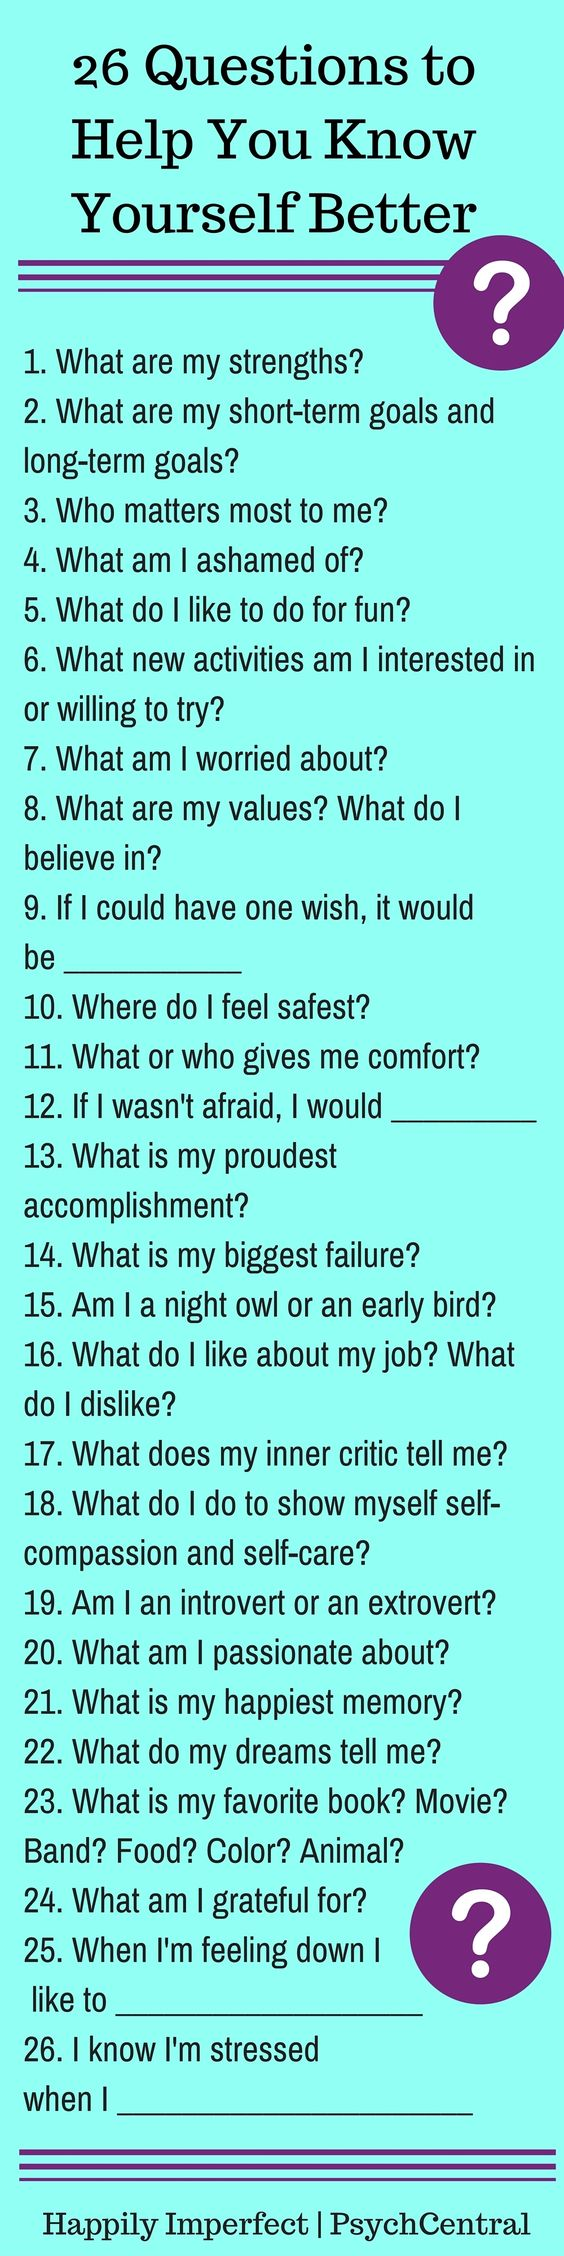 questions to help you know yourself better your life 26 questions to help you know yourself better